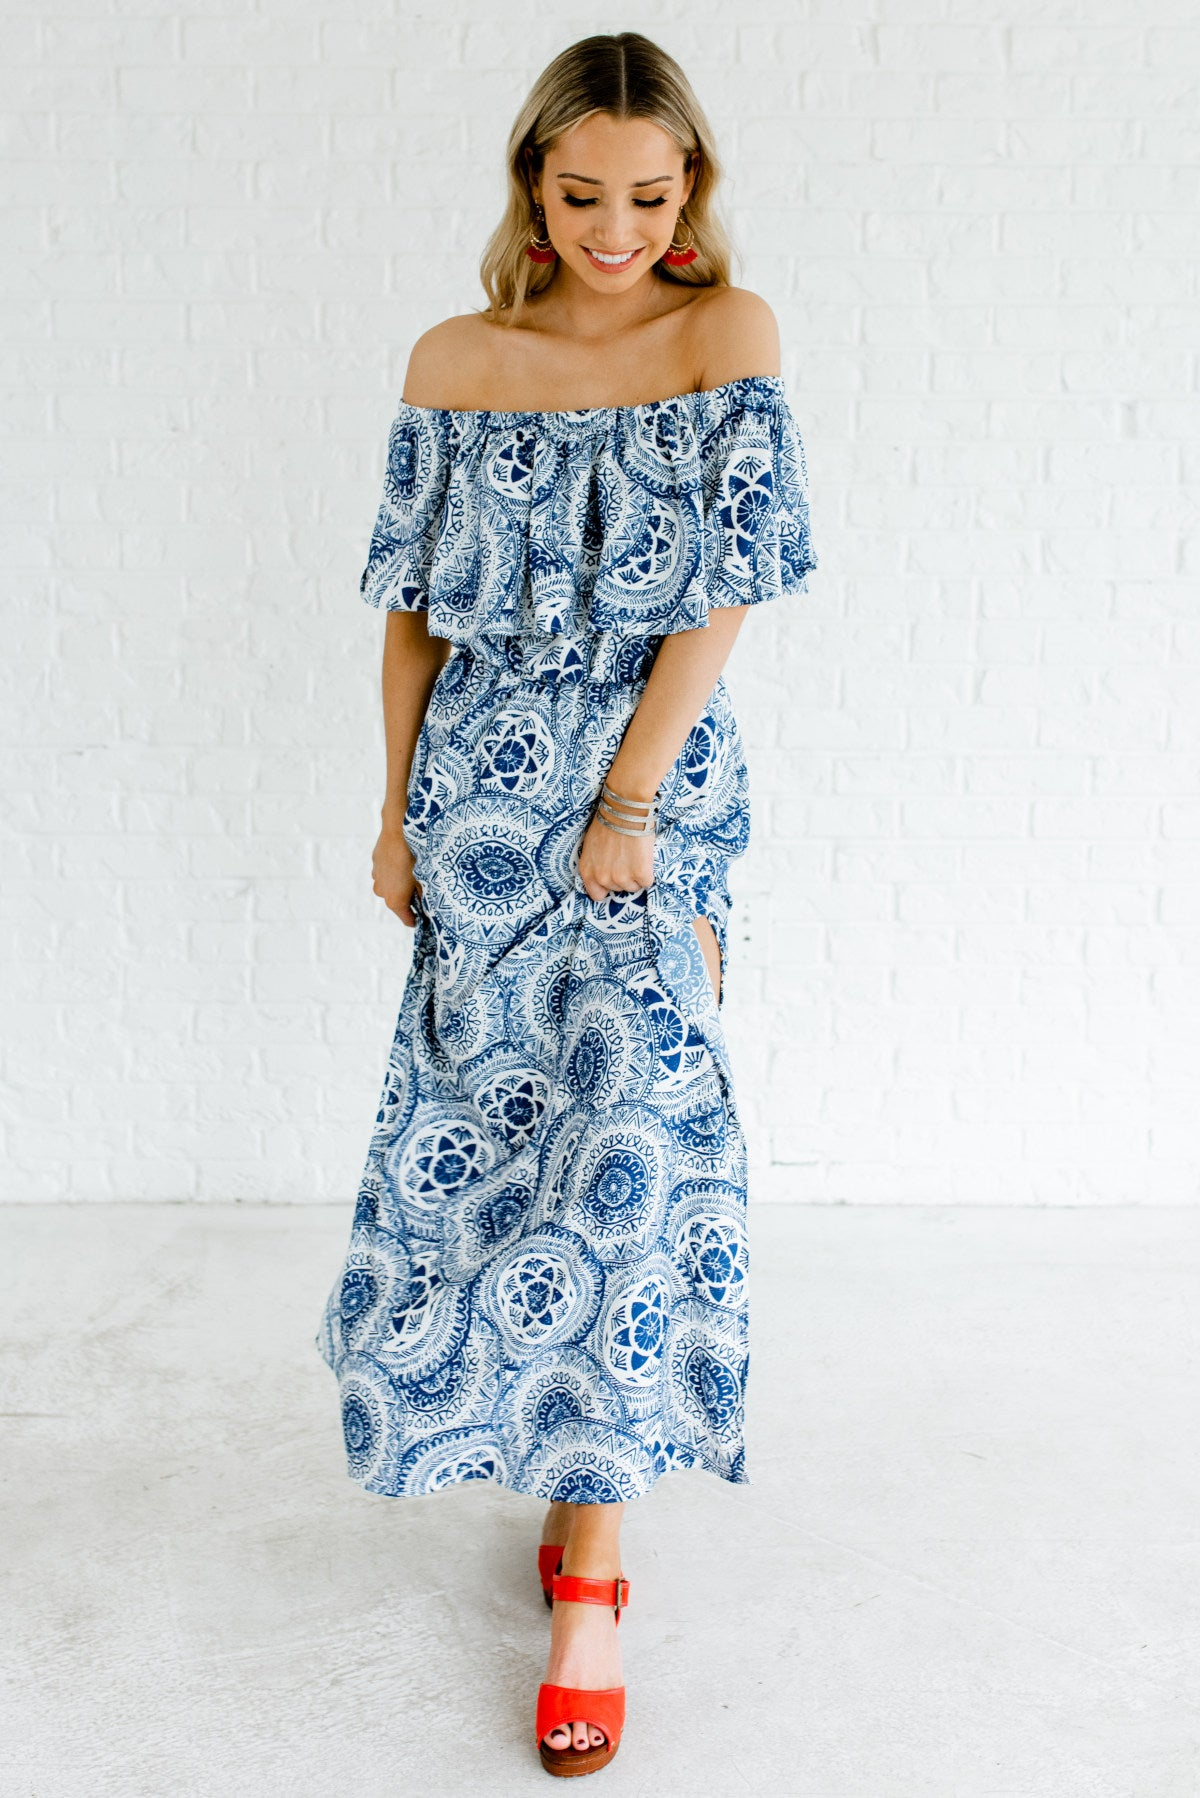 1a57253cf3 ... Off Shoulder Maxi Dress. Blue and White Patterned Maxi Length Boutique  Dresses for Women